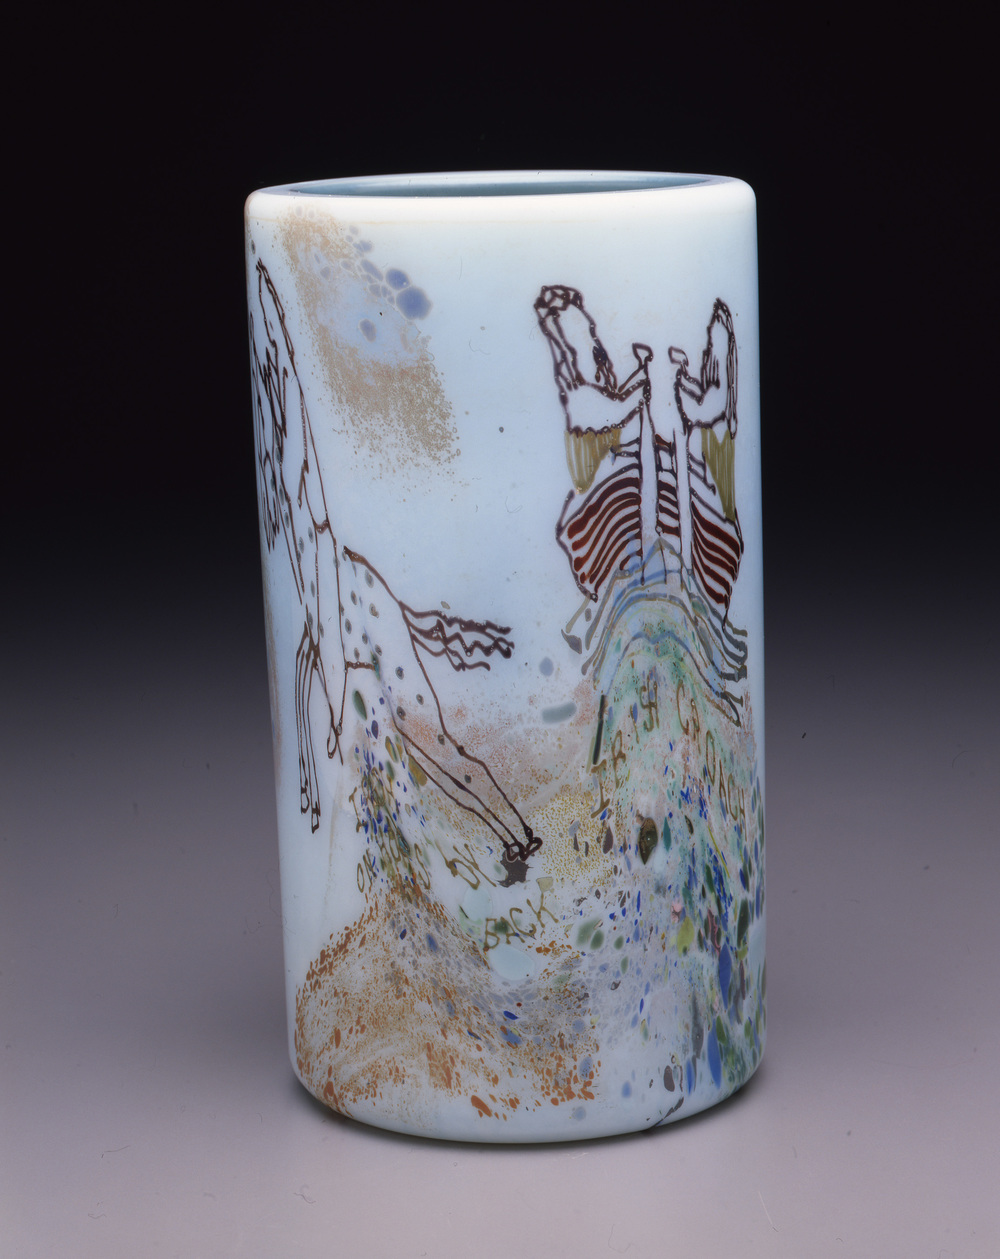 Dale Chihuly,  Irish Cylinder #34  (1975, glass, 10 x 5 1/2 inches), DC.296